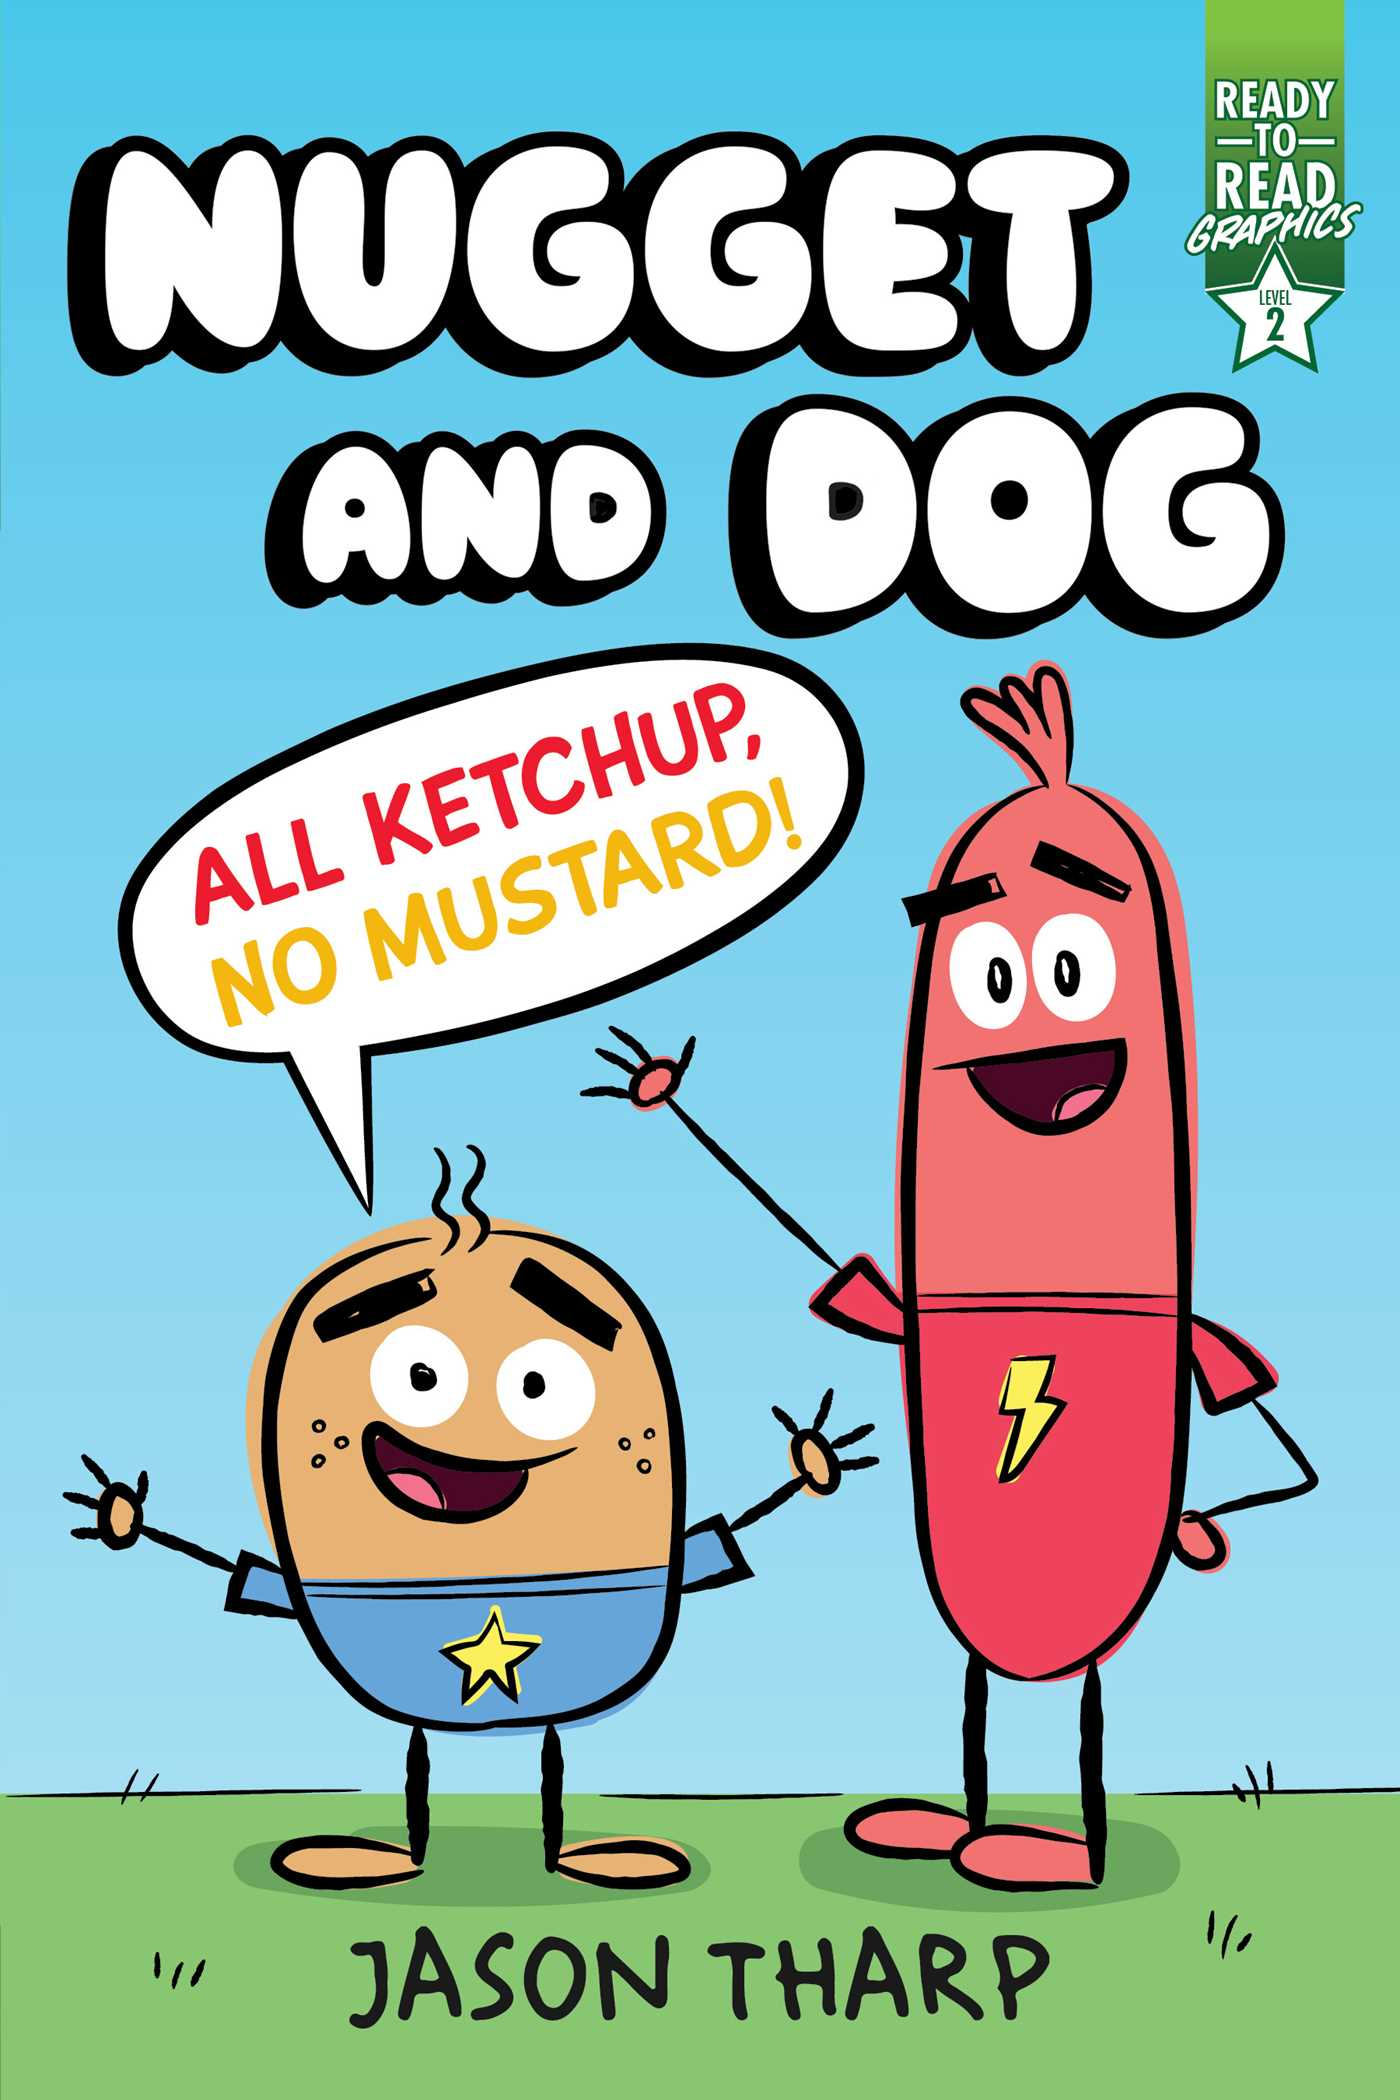 All Ketchup, No Mustard! Ready-to-Read Graphics Level 2